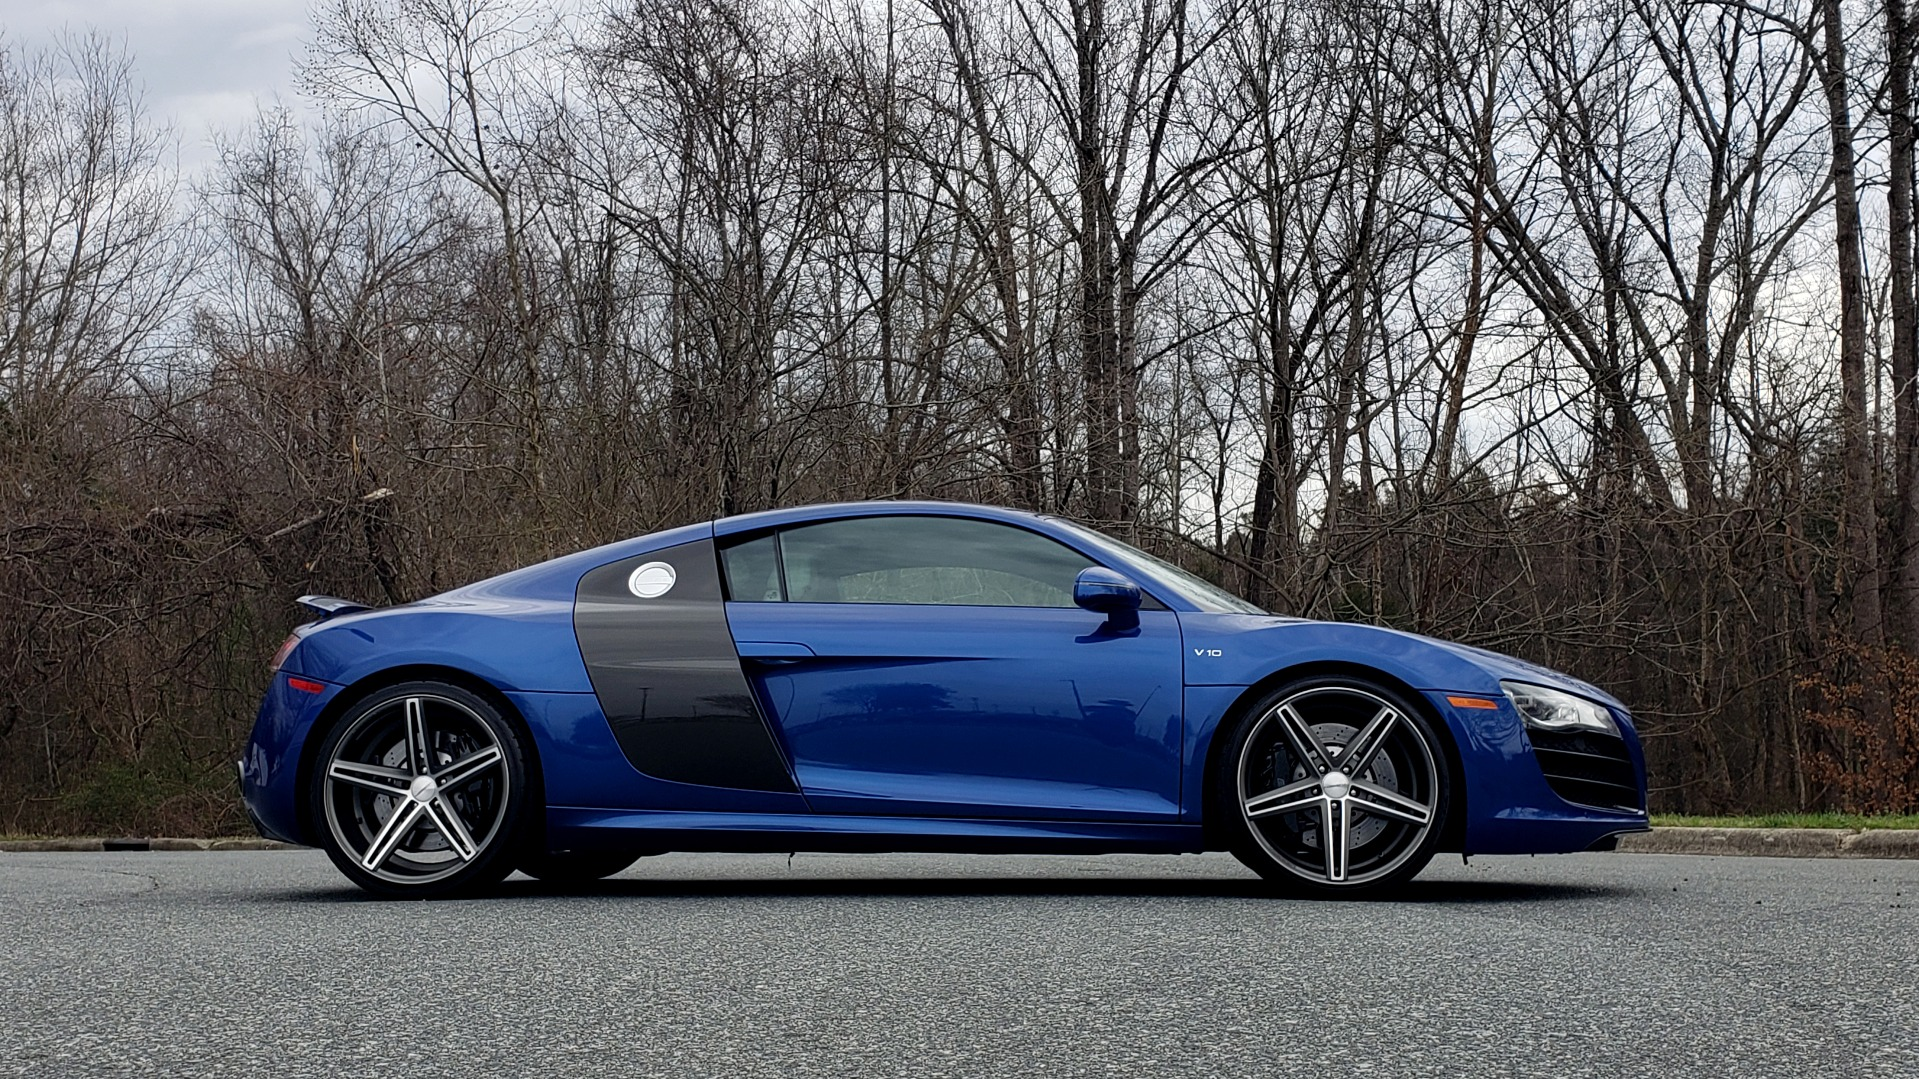 Used 2010 Audi R8 5.2L V10 / AWD / COUPE / NAV / 6-SPD AUTO / CUSTOM WHEELS for sale Sold at Formula Imports in Charlotte NC 28227 7